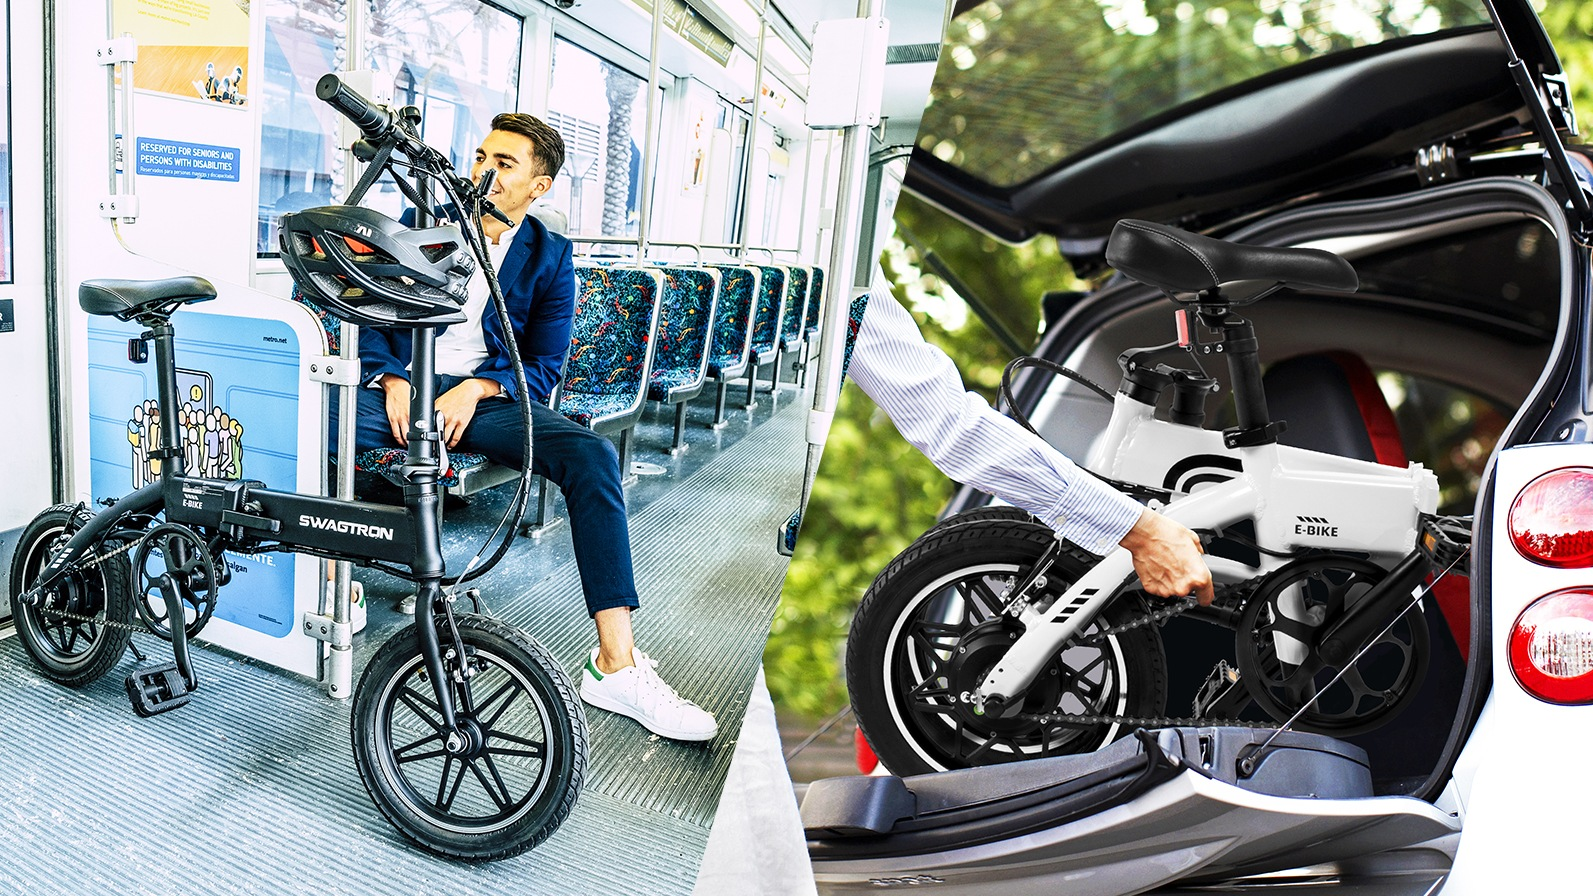 Split-screen image: Man sitting on the bus with his EB5 eBike next to him, and close-up of a folded EB5 being placed in the back of a trunk.